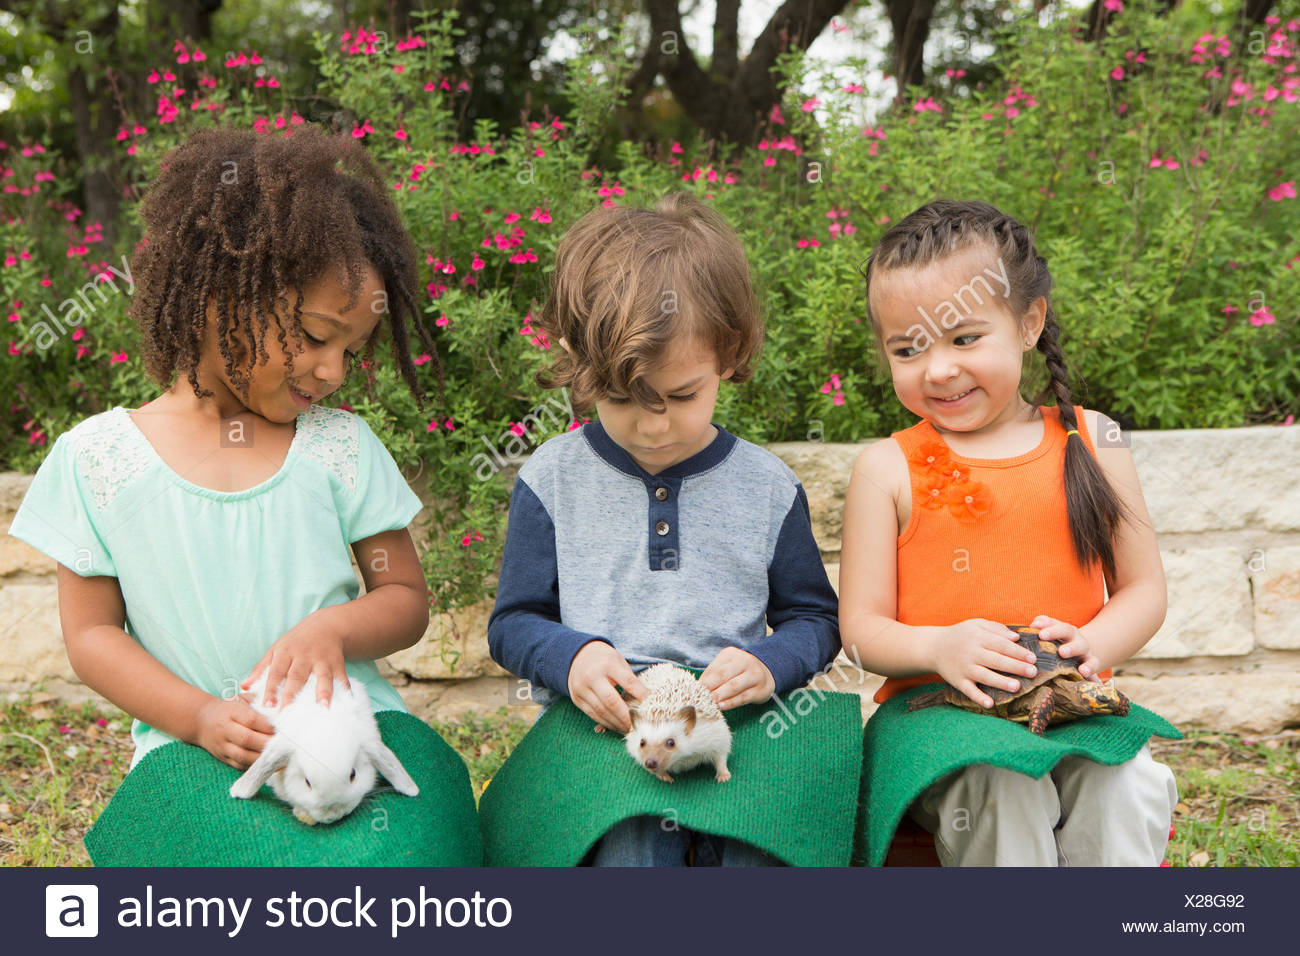 Three children seated in a row, each with a small animal on their lap. - Stock Image